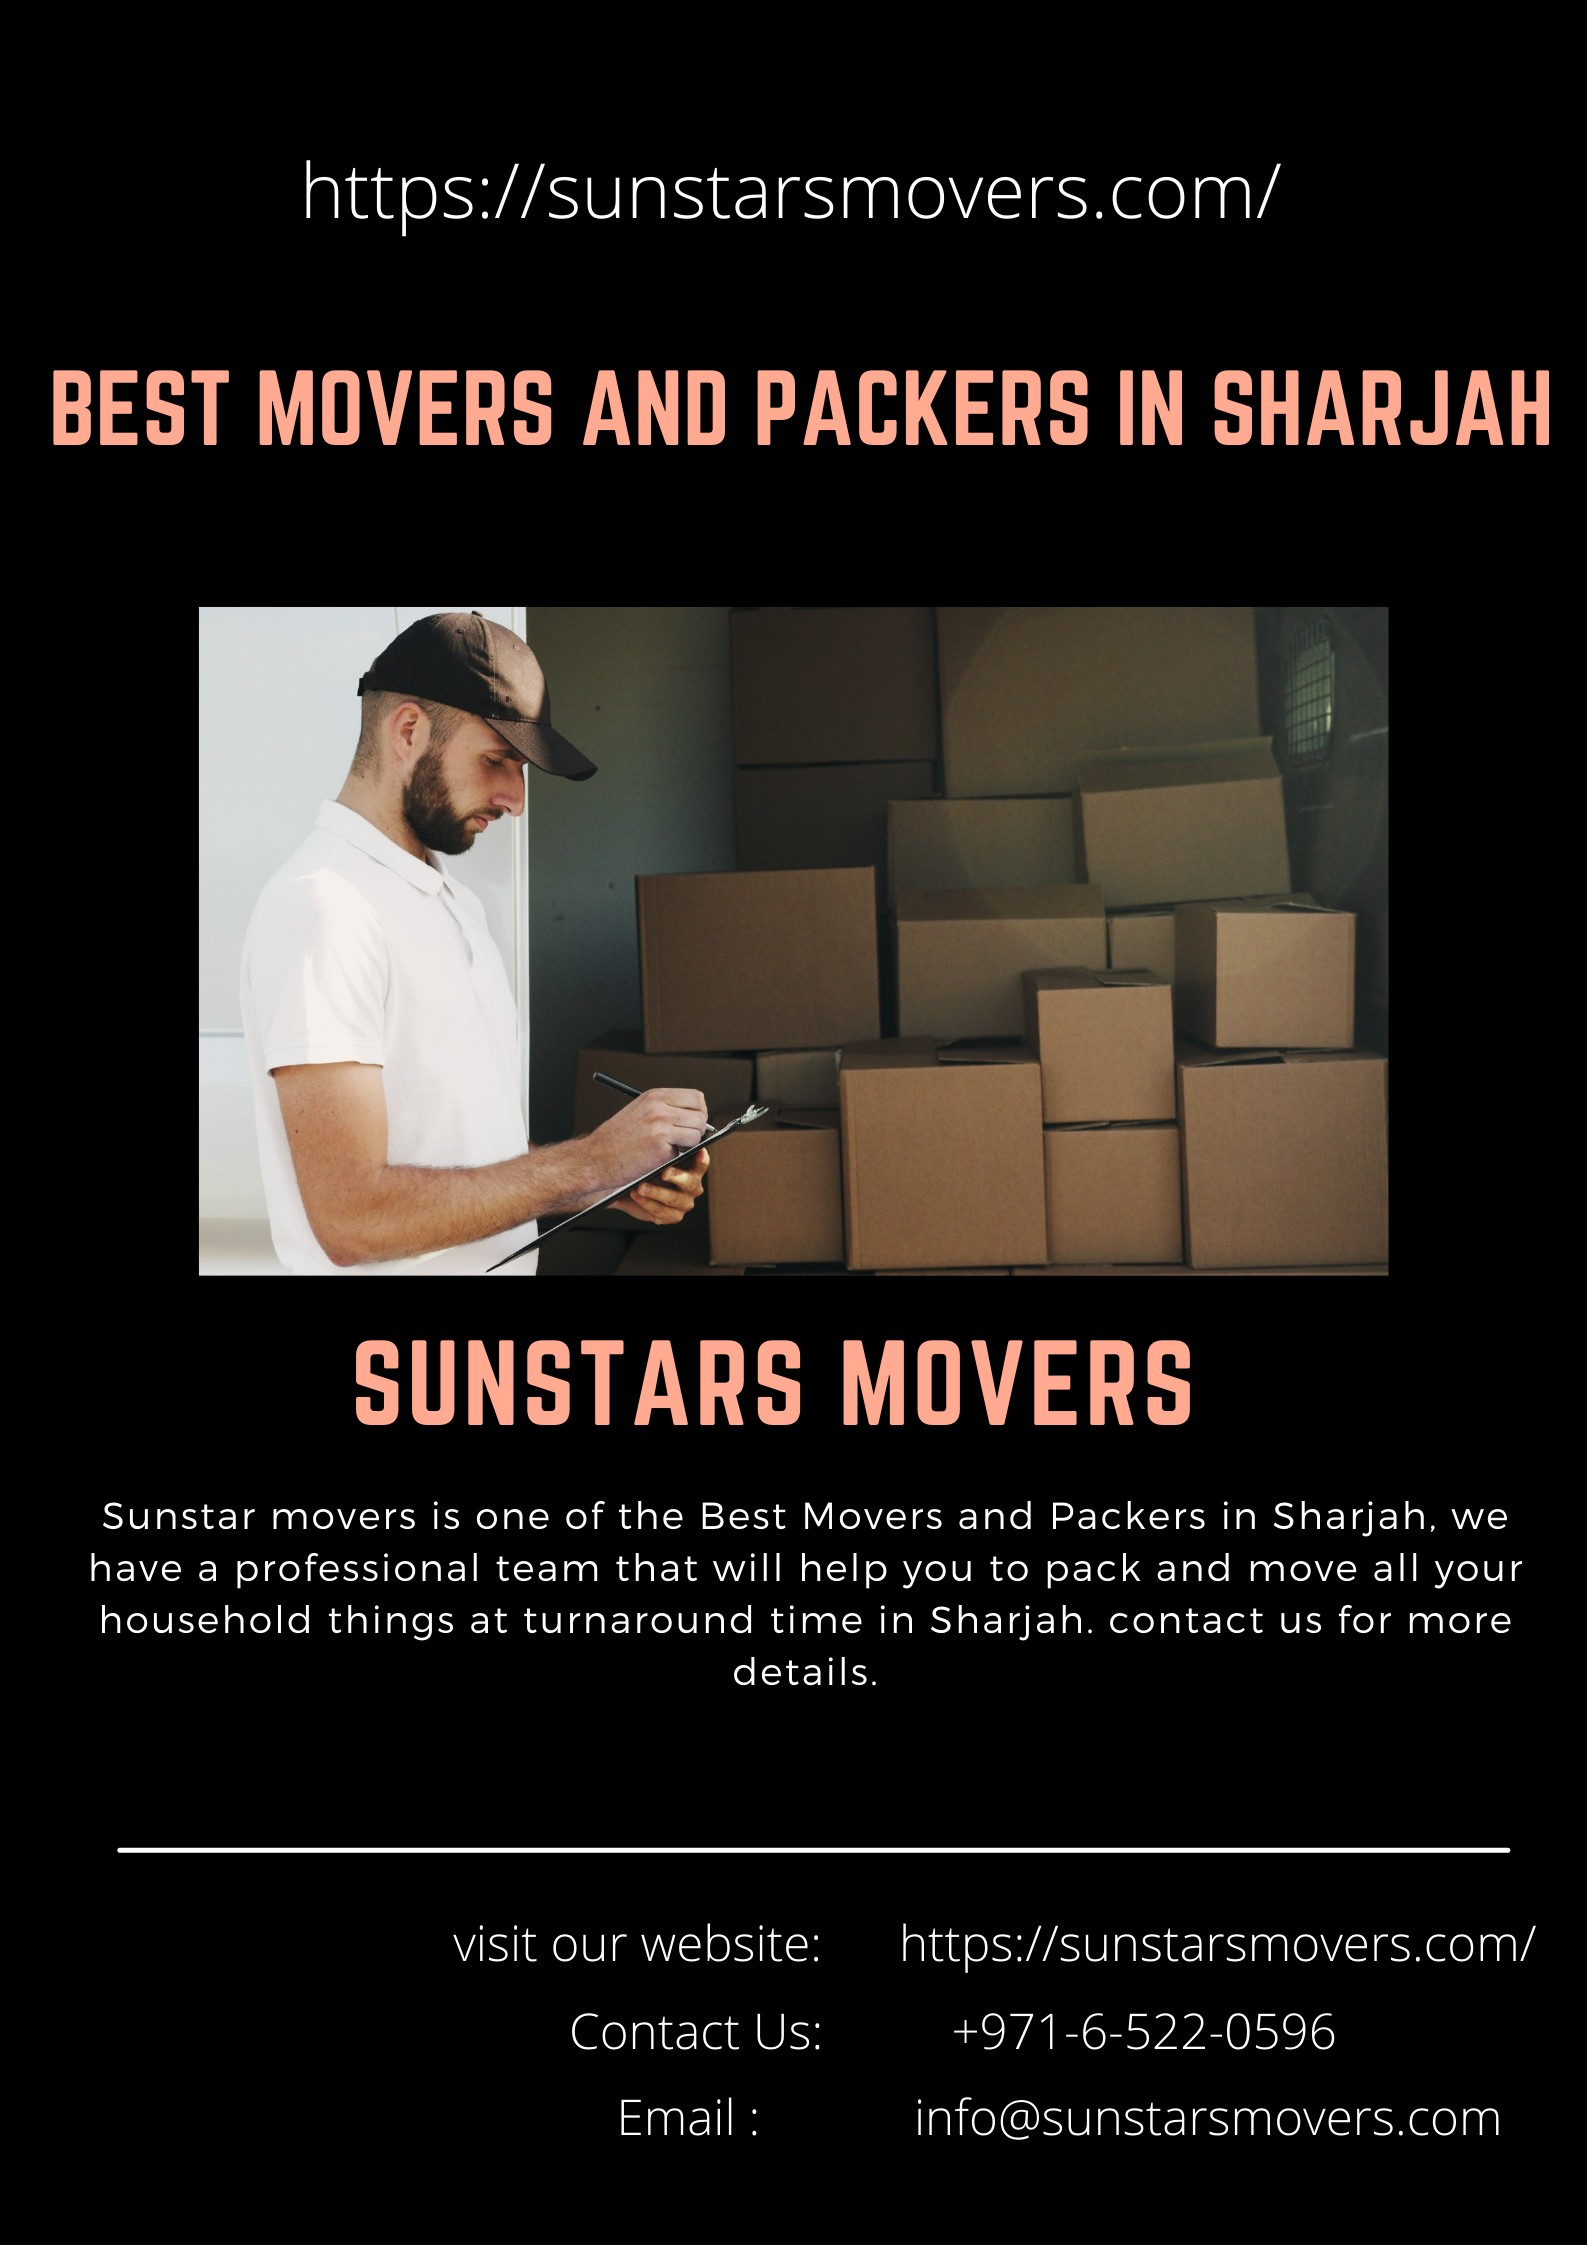 Best Movers and Packers in Sharjah   Sunstars Movers